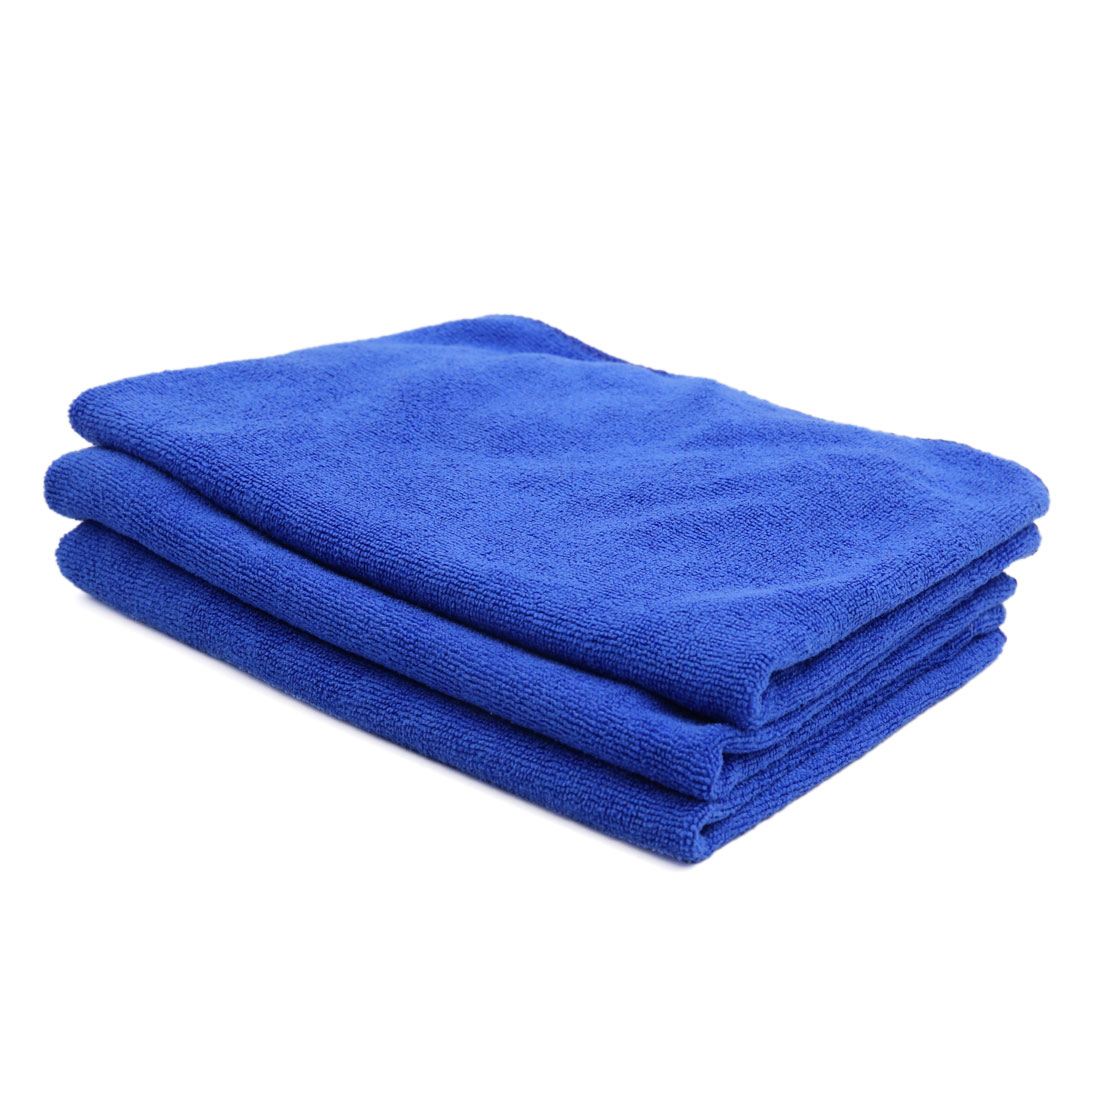 3 Pcs High Absorbing Microfiber Fabric Car Clean Cloth Towel No-scratched for Auto Car Glass Blue